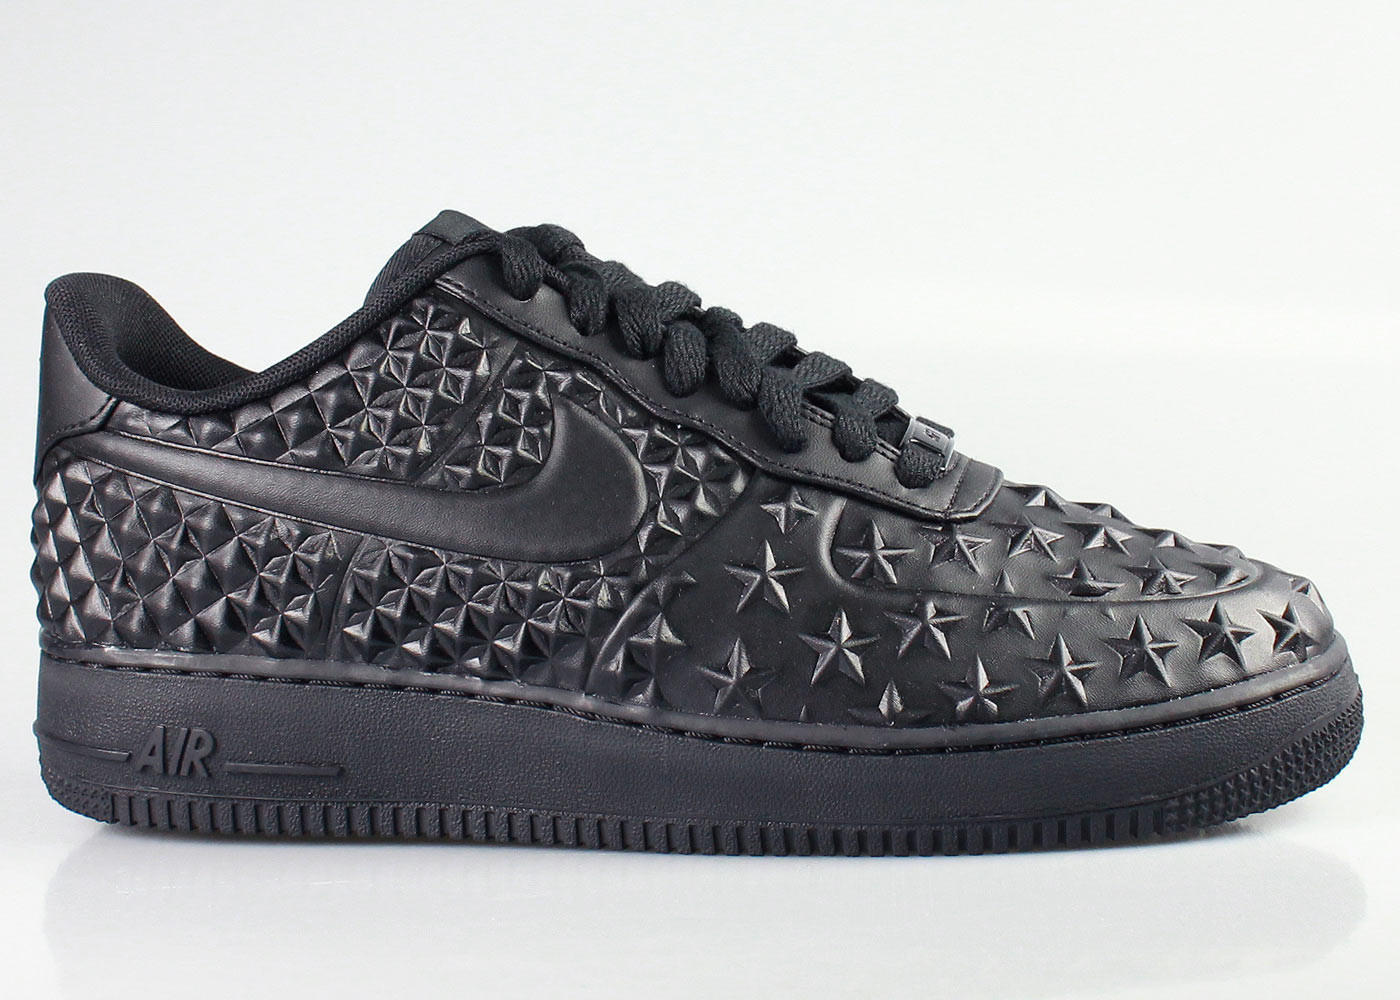 Nike Men s Air Force 1 Low LV8 VT from KickzStore b270e53d0bdf